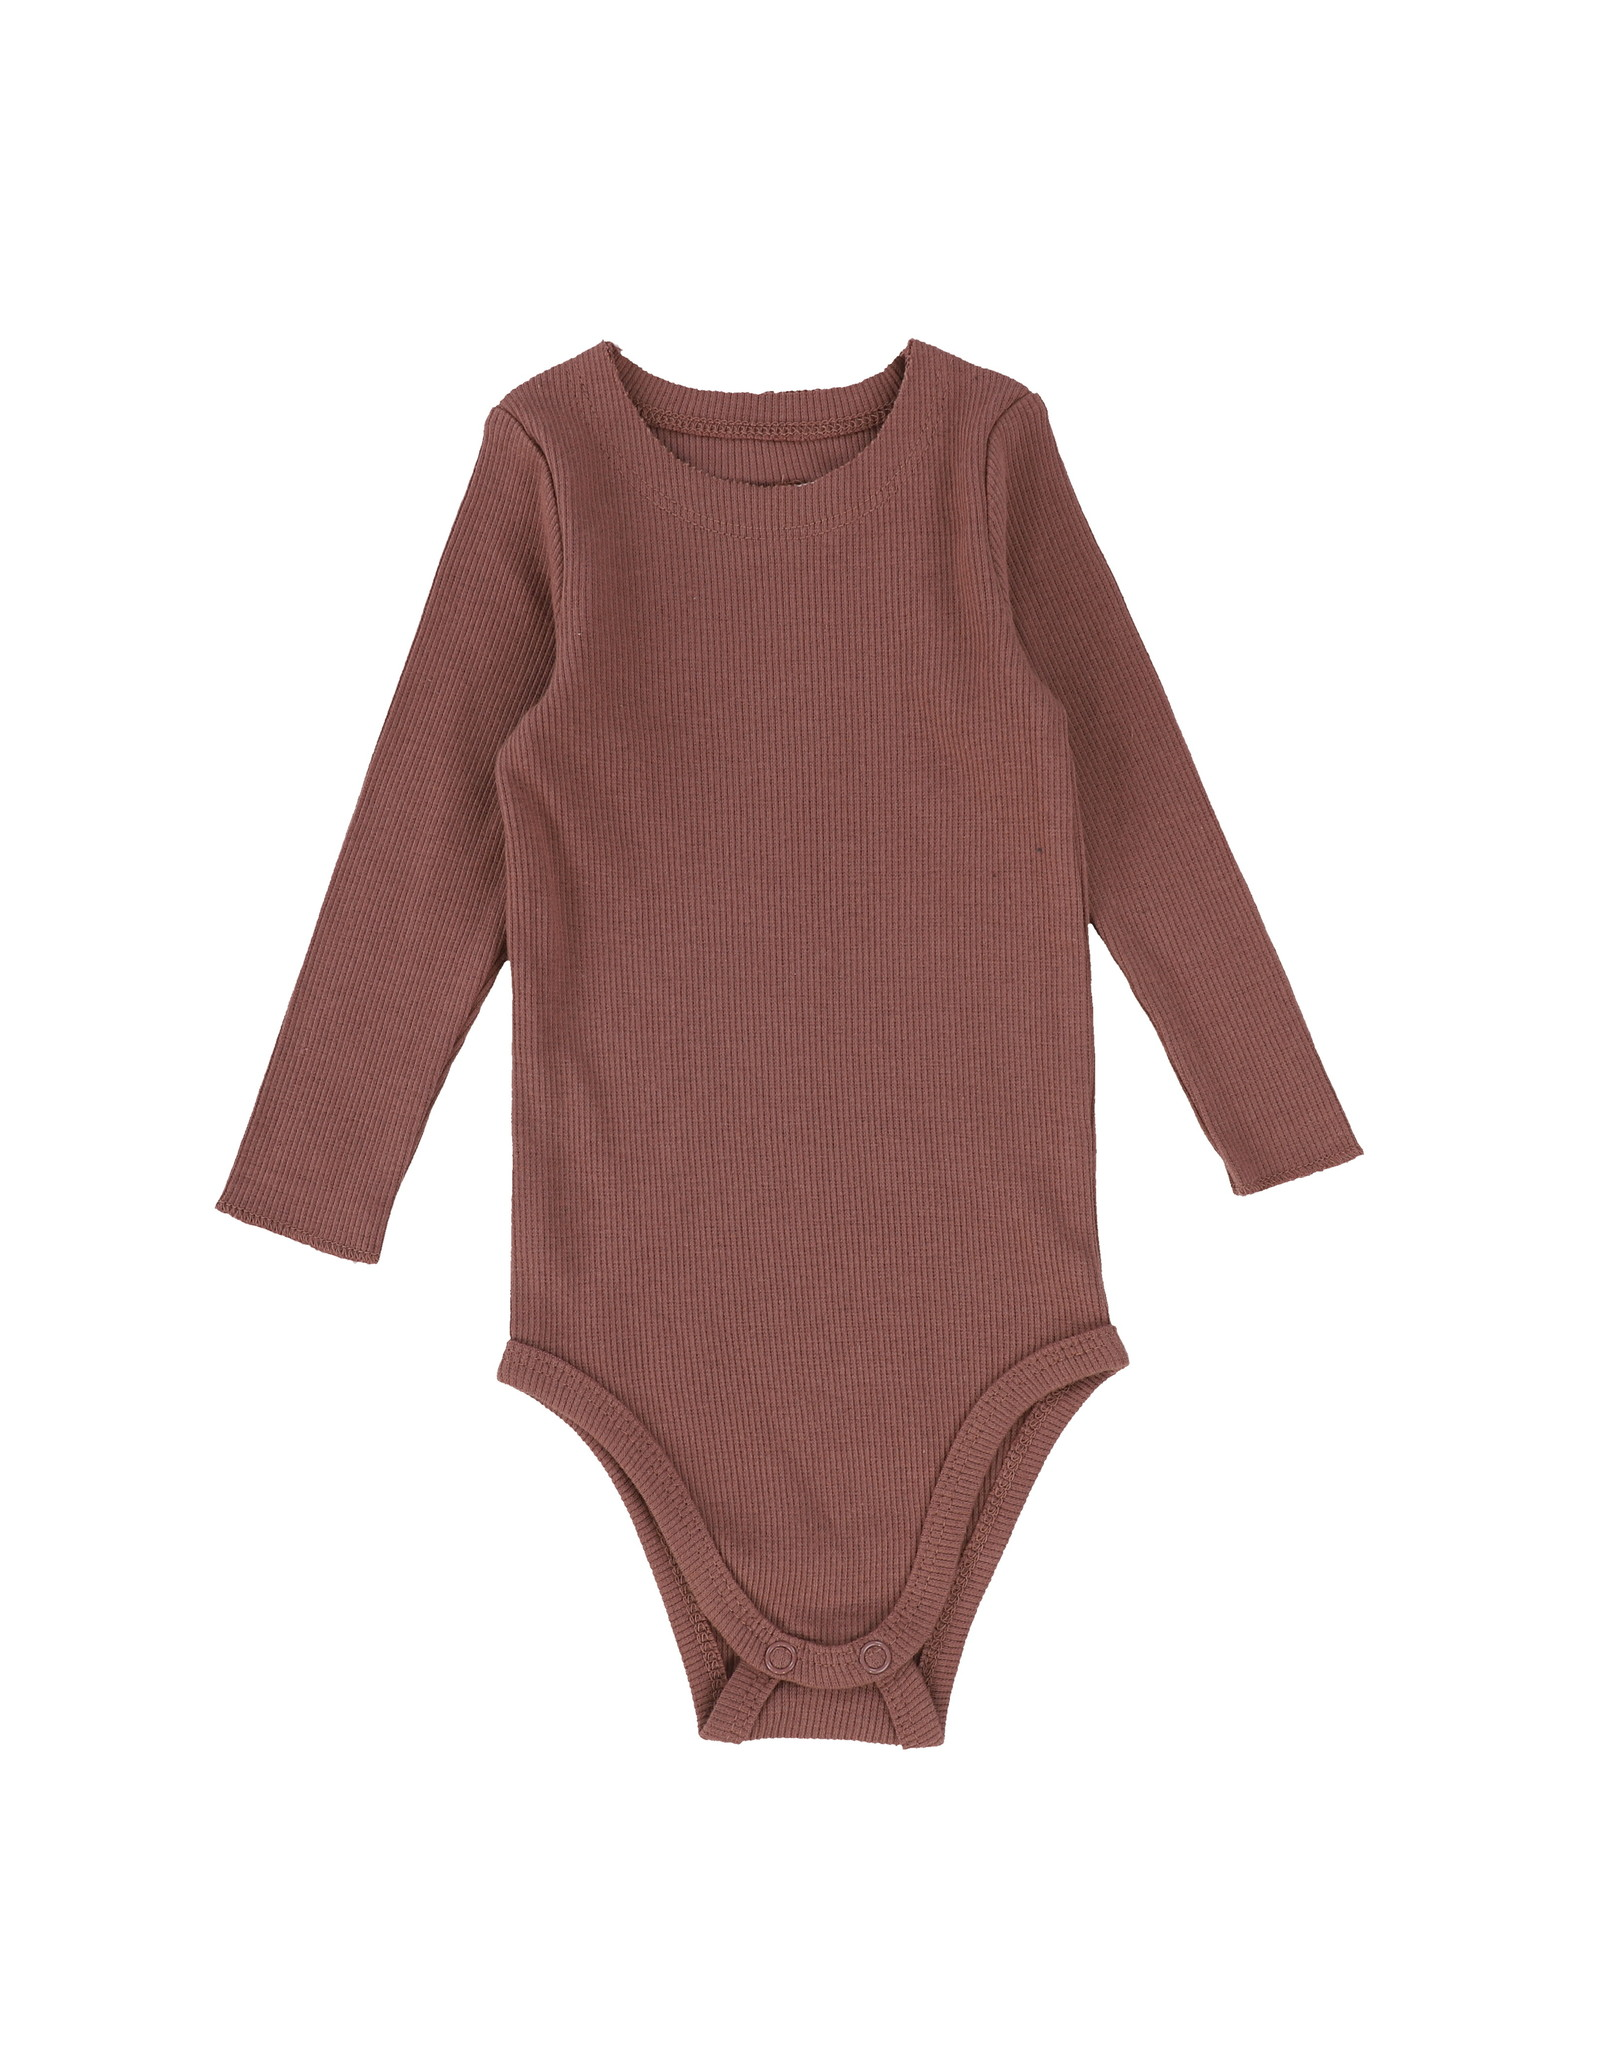 LIL LEGS FW20 Rib Onsie Fashion Colors